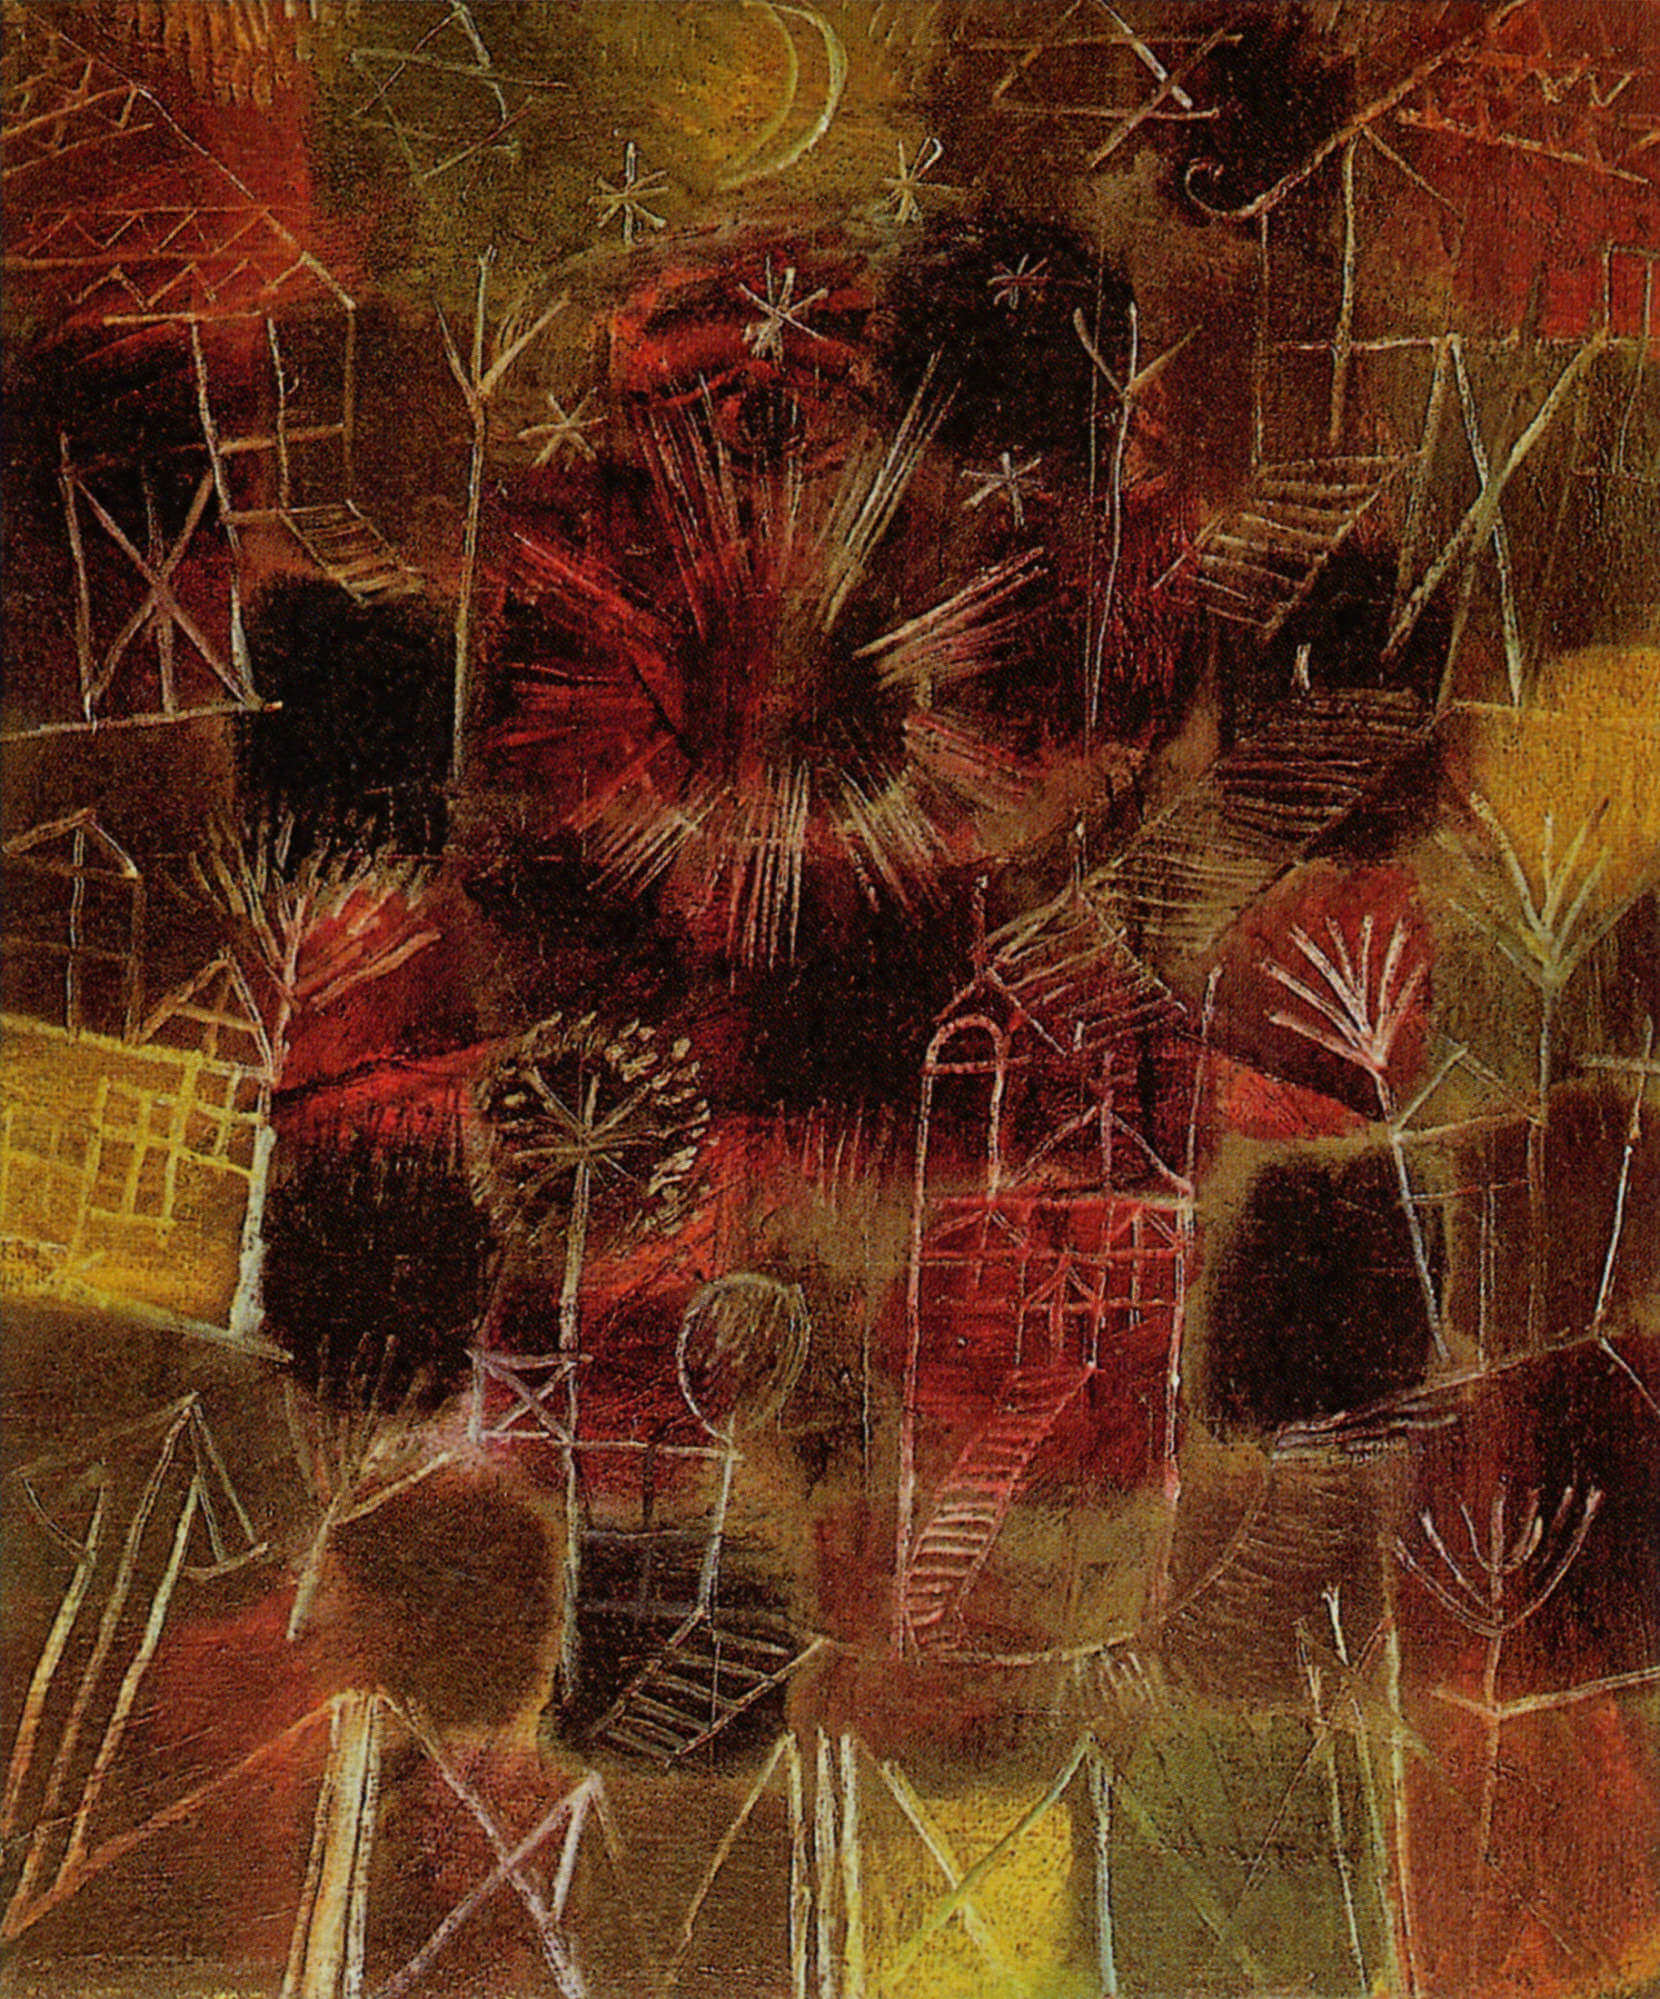 Cosmic Composition, 1919, by Paul Klee